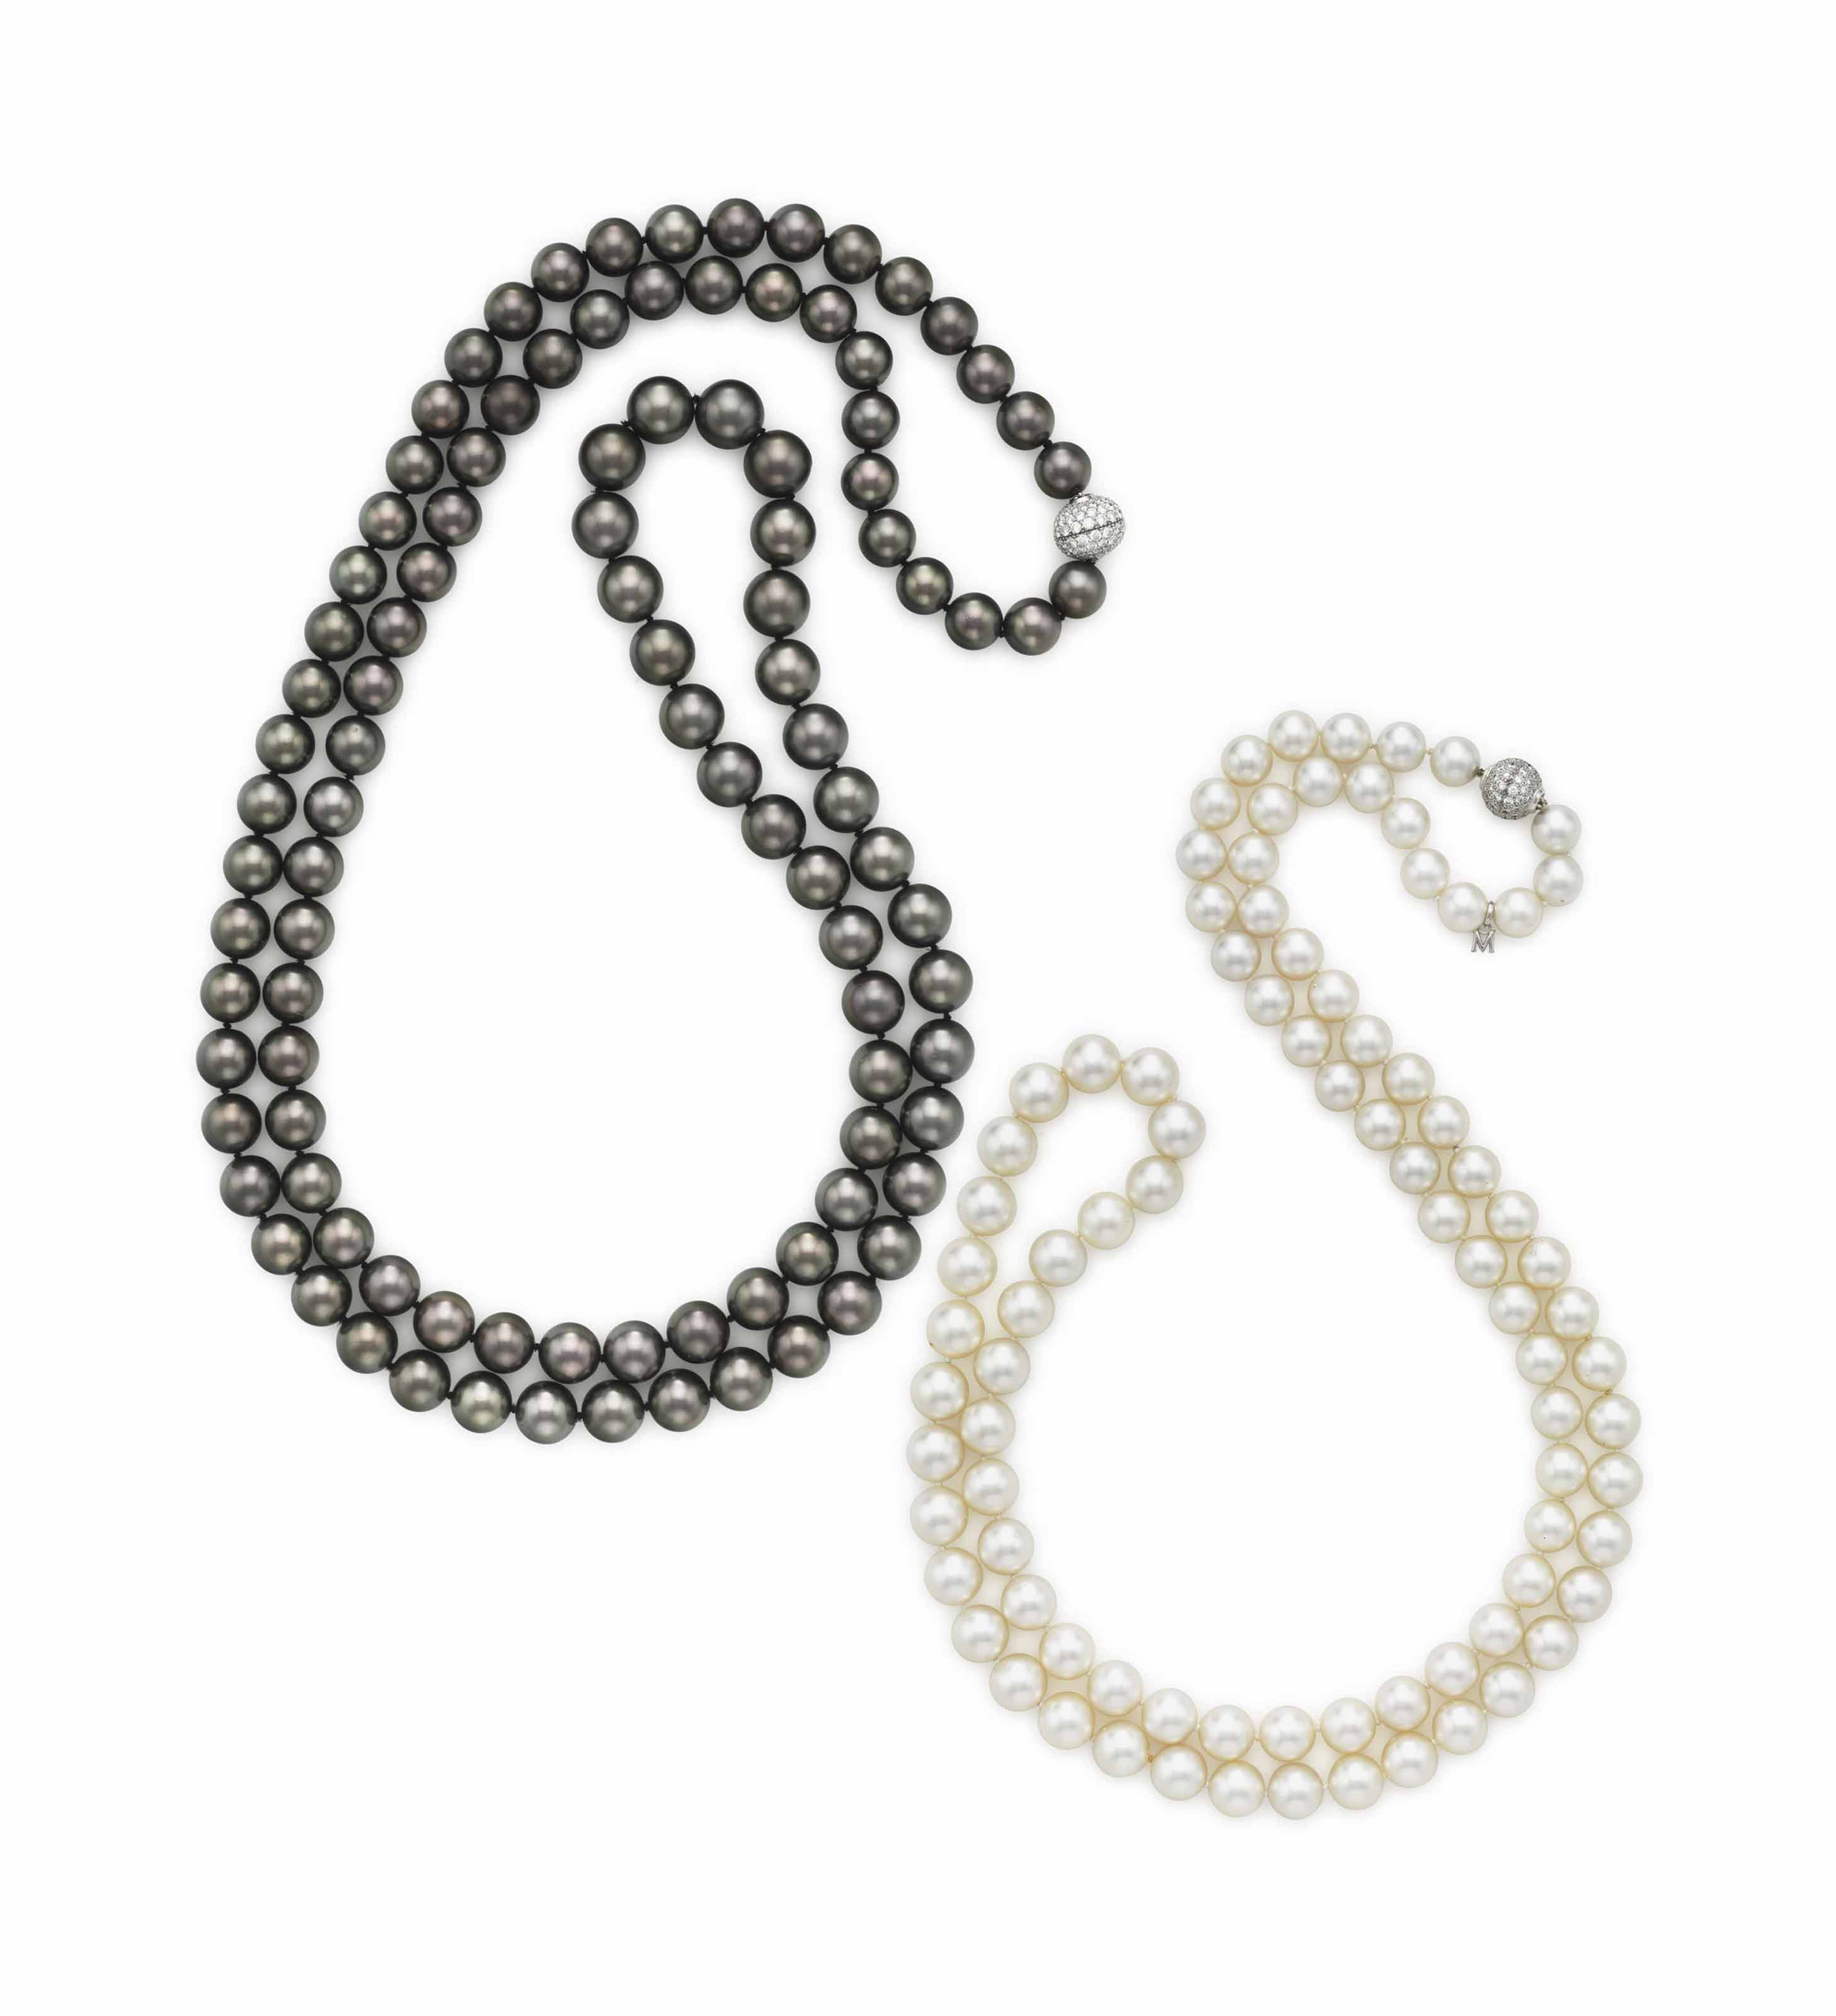 A SINGLE-STRAND CULTURED PEARL AND DIAMOND NECKLACE, BY MIKIMOTO AND A SINGLE-STRAND GRAY CULTURED PEARL AND DIAMOND NECKLACE